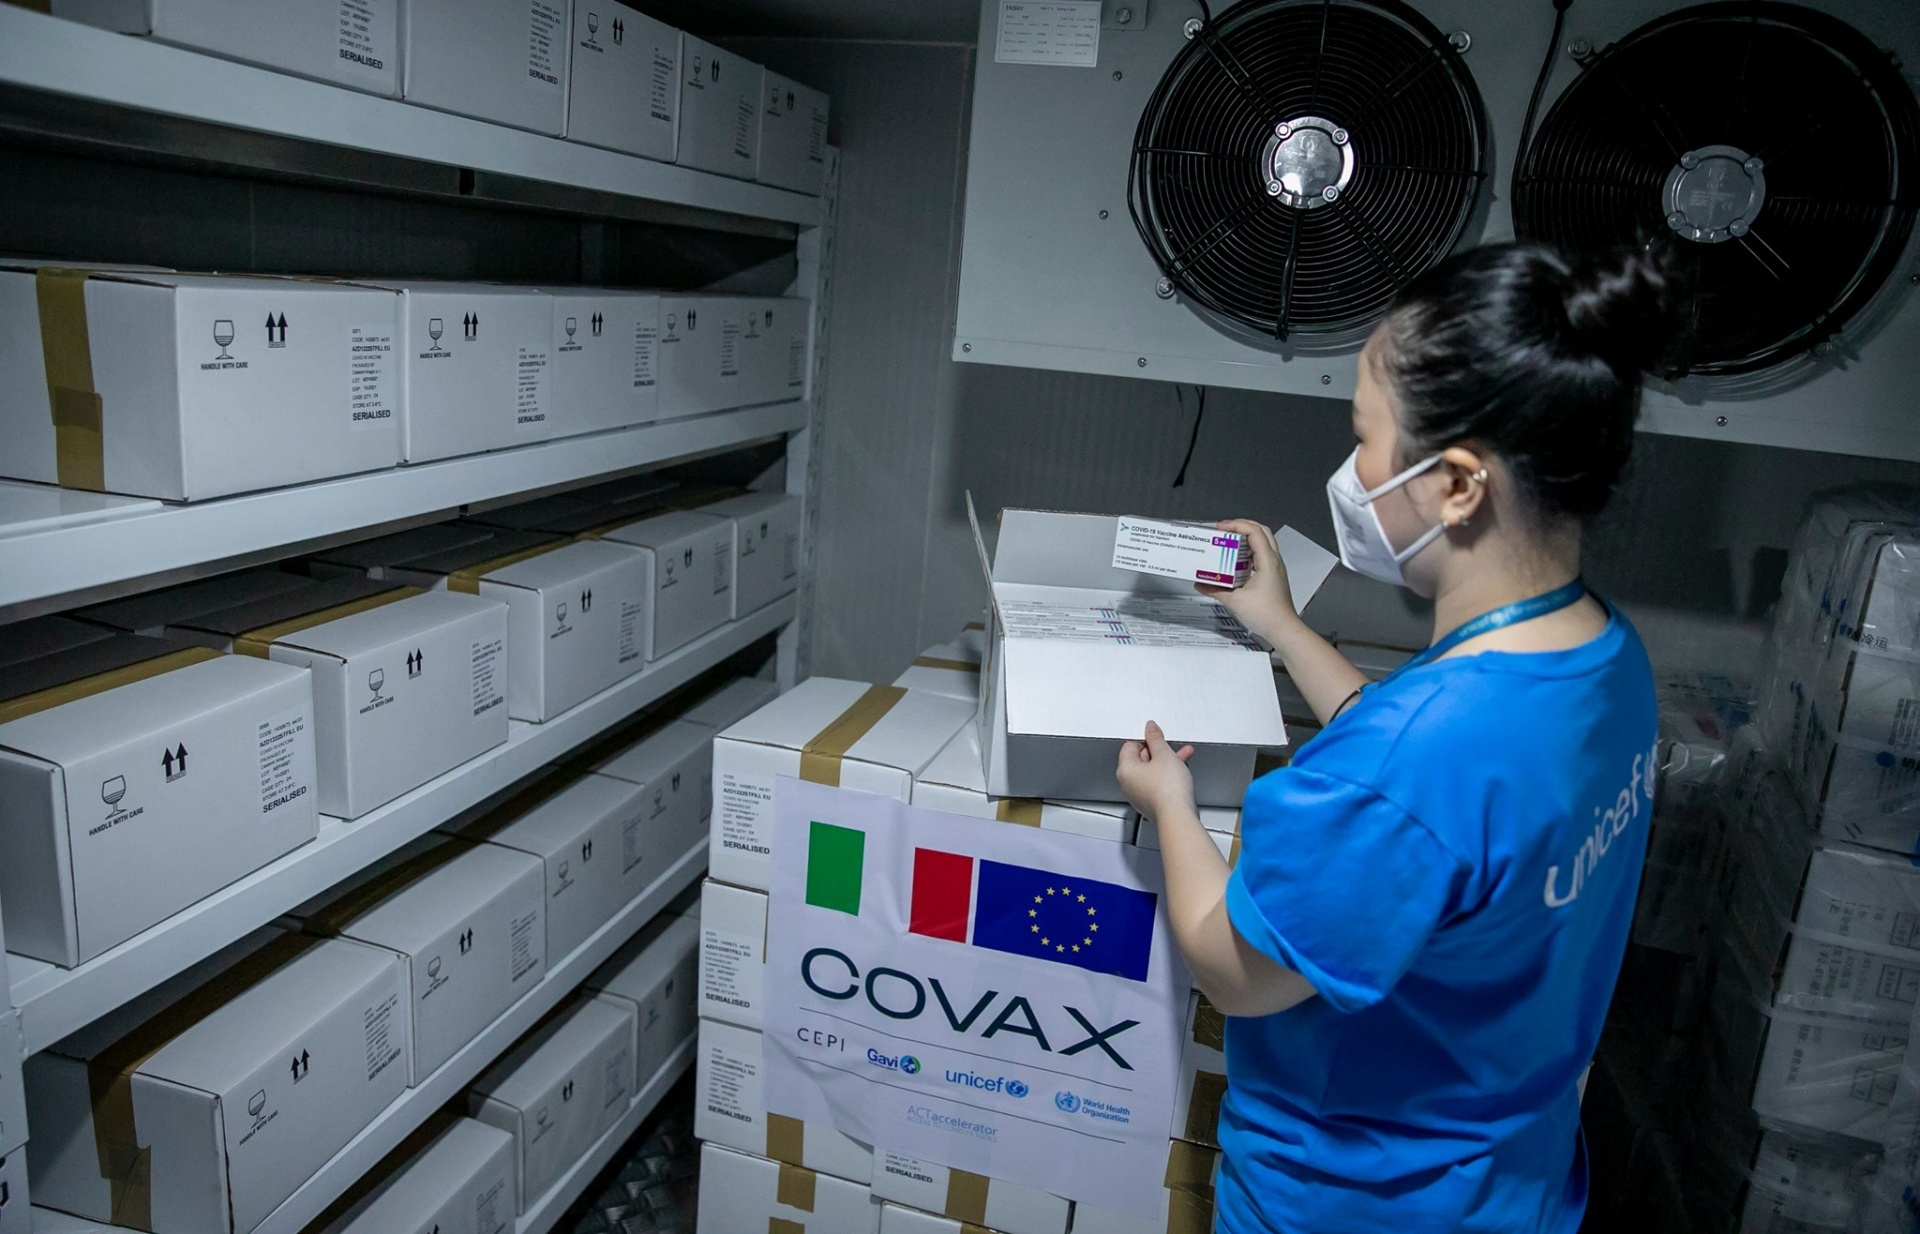 Vietnam receives nearly 1.5 million doses of COVID-19 vaccines from France and Italy